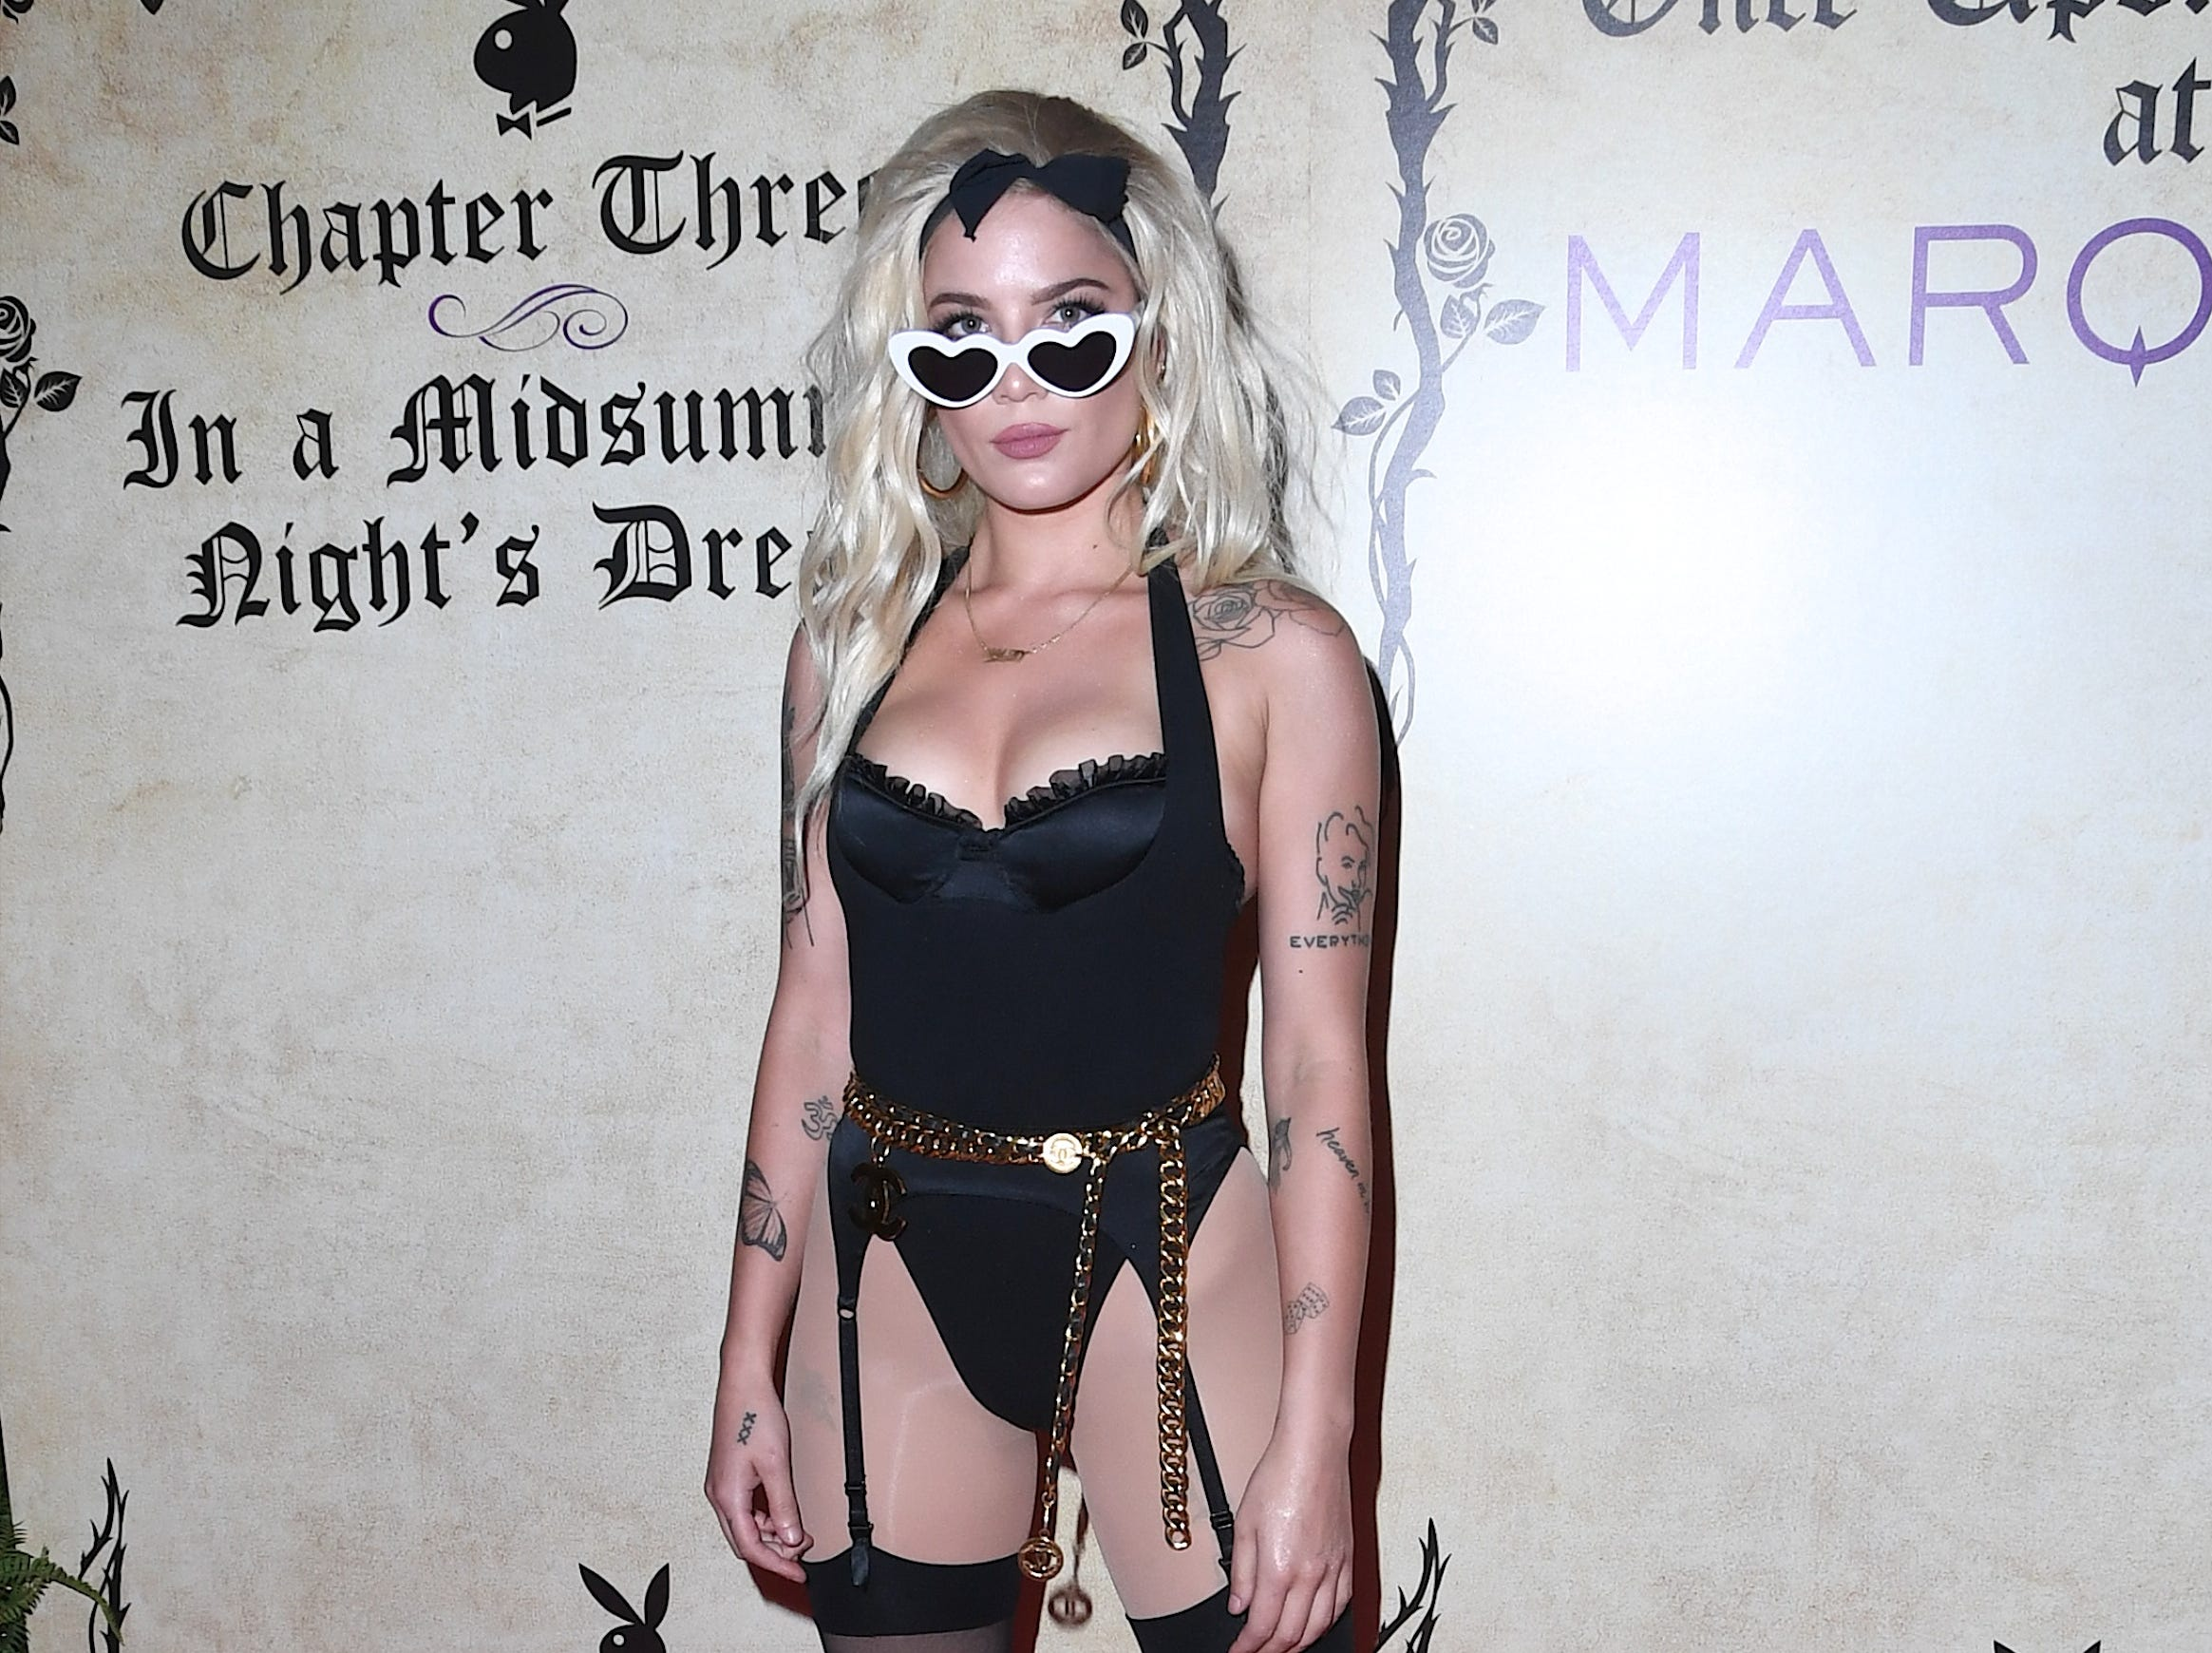 Halsey arrived at Playboy's Midsummer Night's Dream in a body suit and tights on July 29, 2018 in Las Vegas.